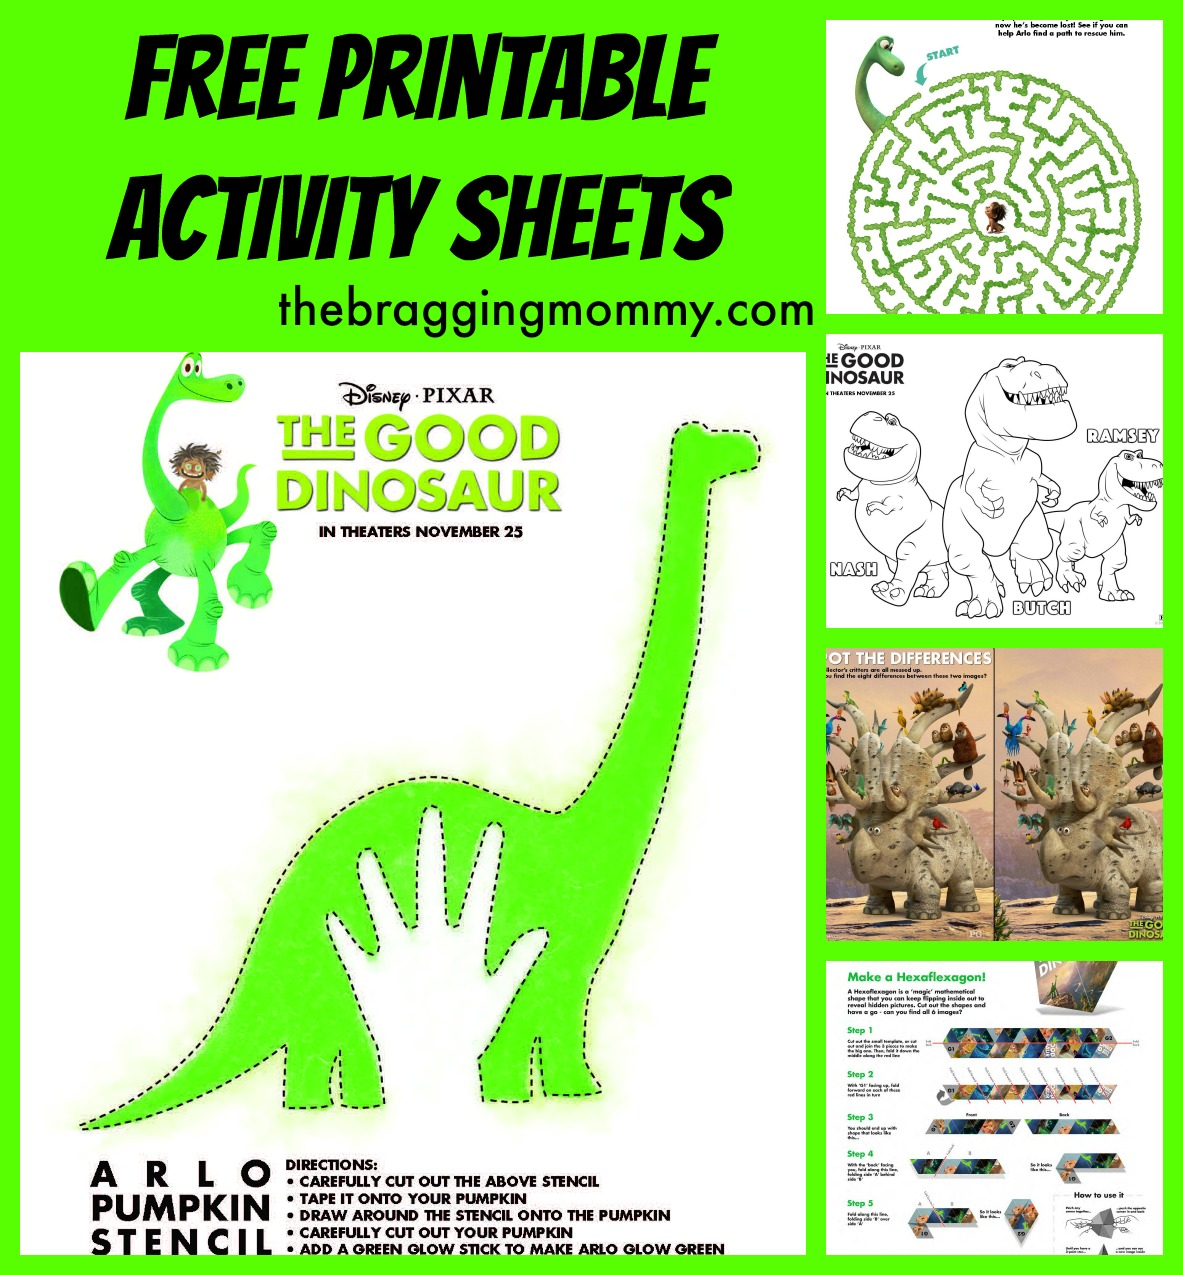 The Good Dinosaur Pumpkin Stencil & Other Printable Activity Sheets! #GoodDinoEvent